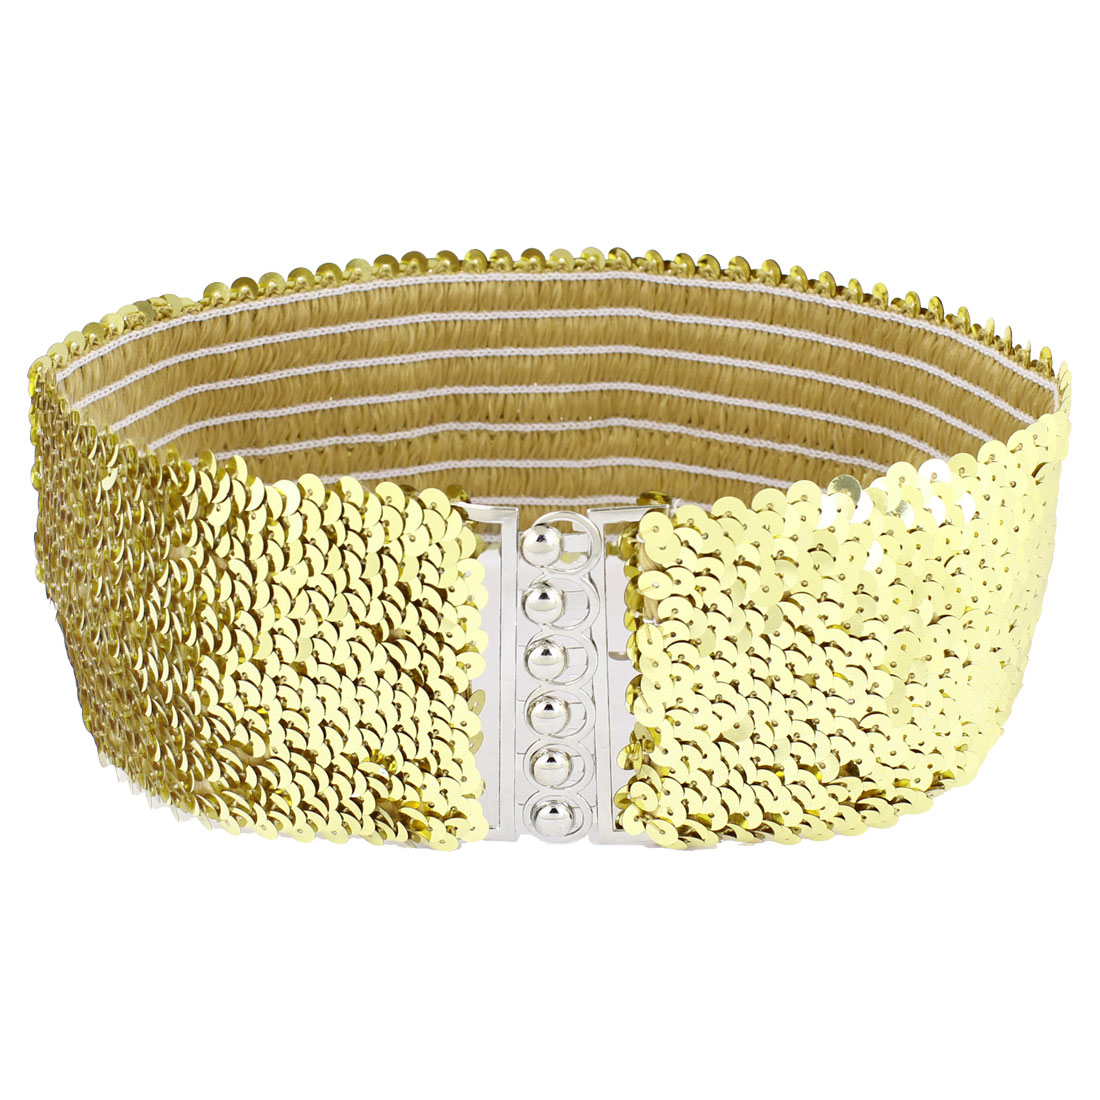 Ladies Sequin Link Decor Stretchy Waistband Cinch Waist Belt Gold Tone